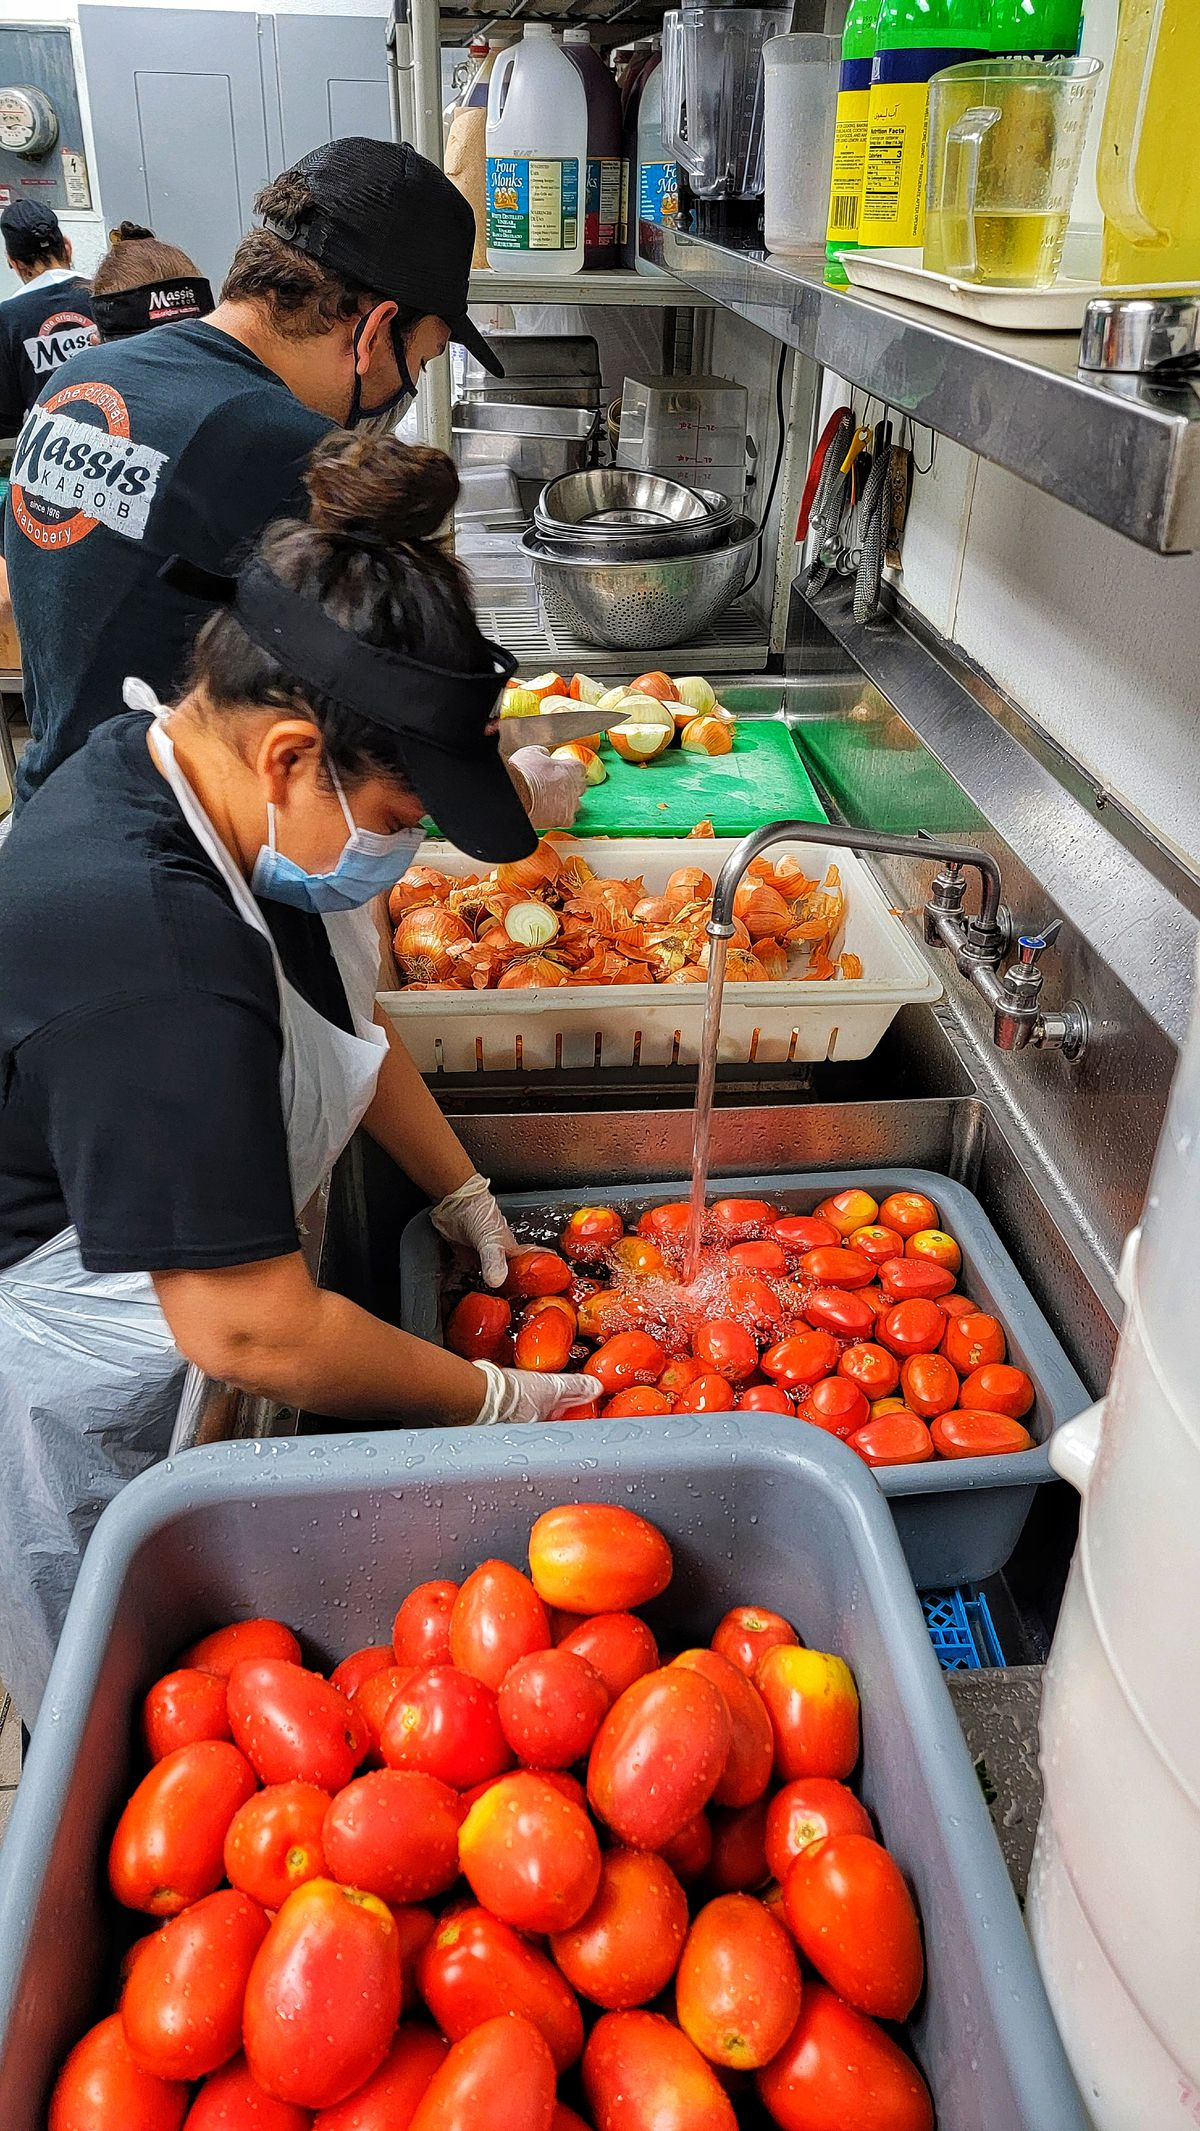 Workers in masks rinse and begin to peel tomatoes inside of an industrial kitchen area.